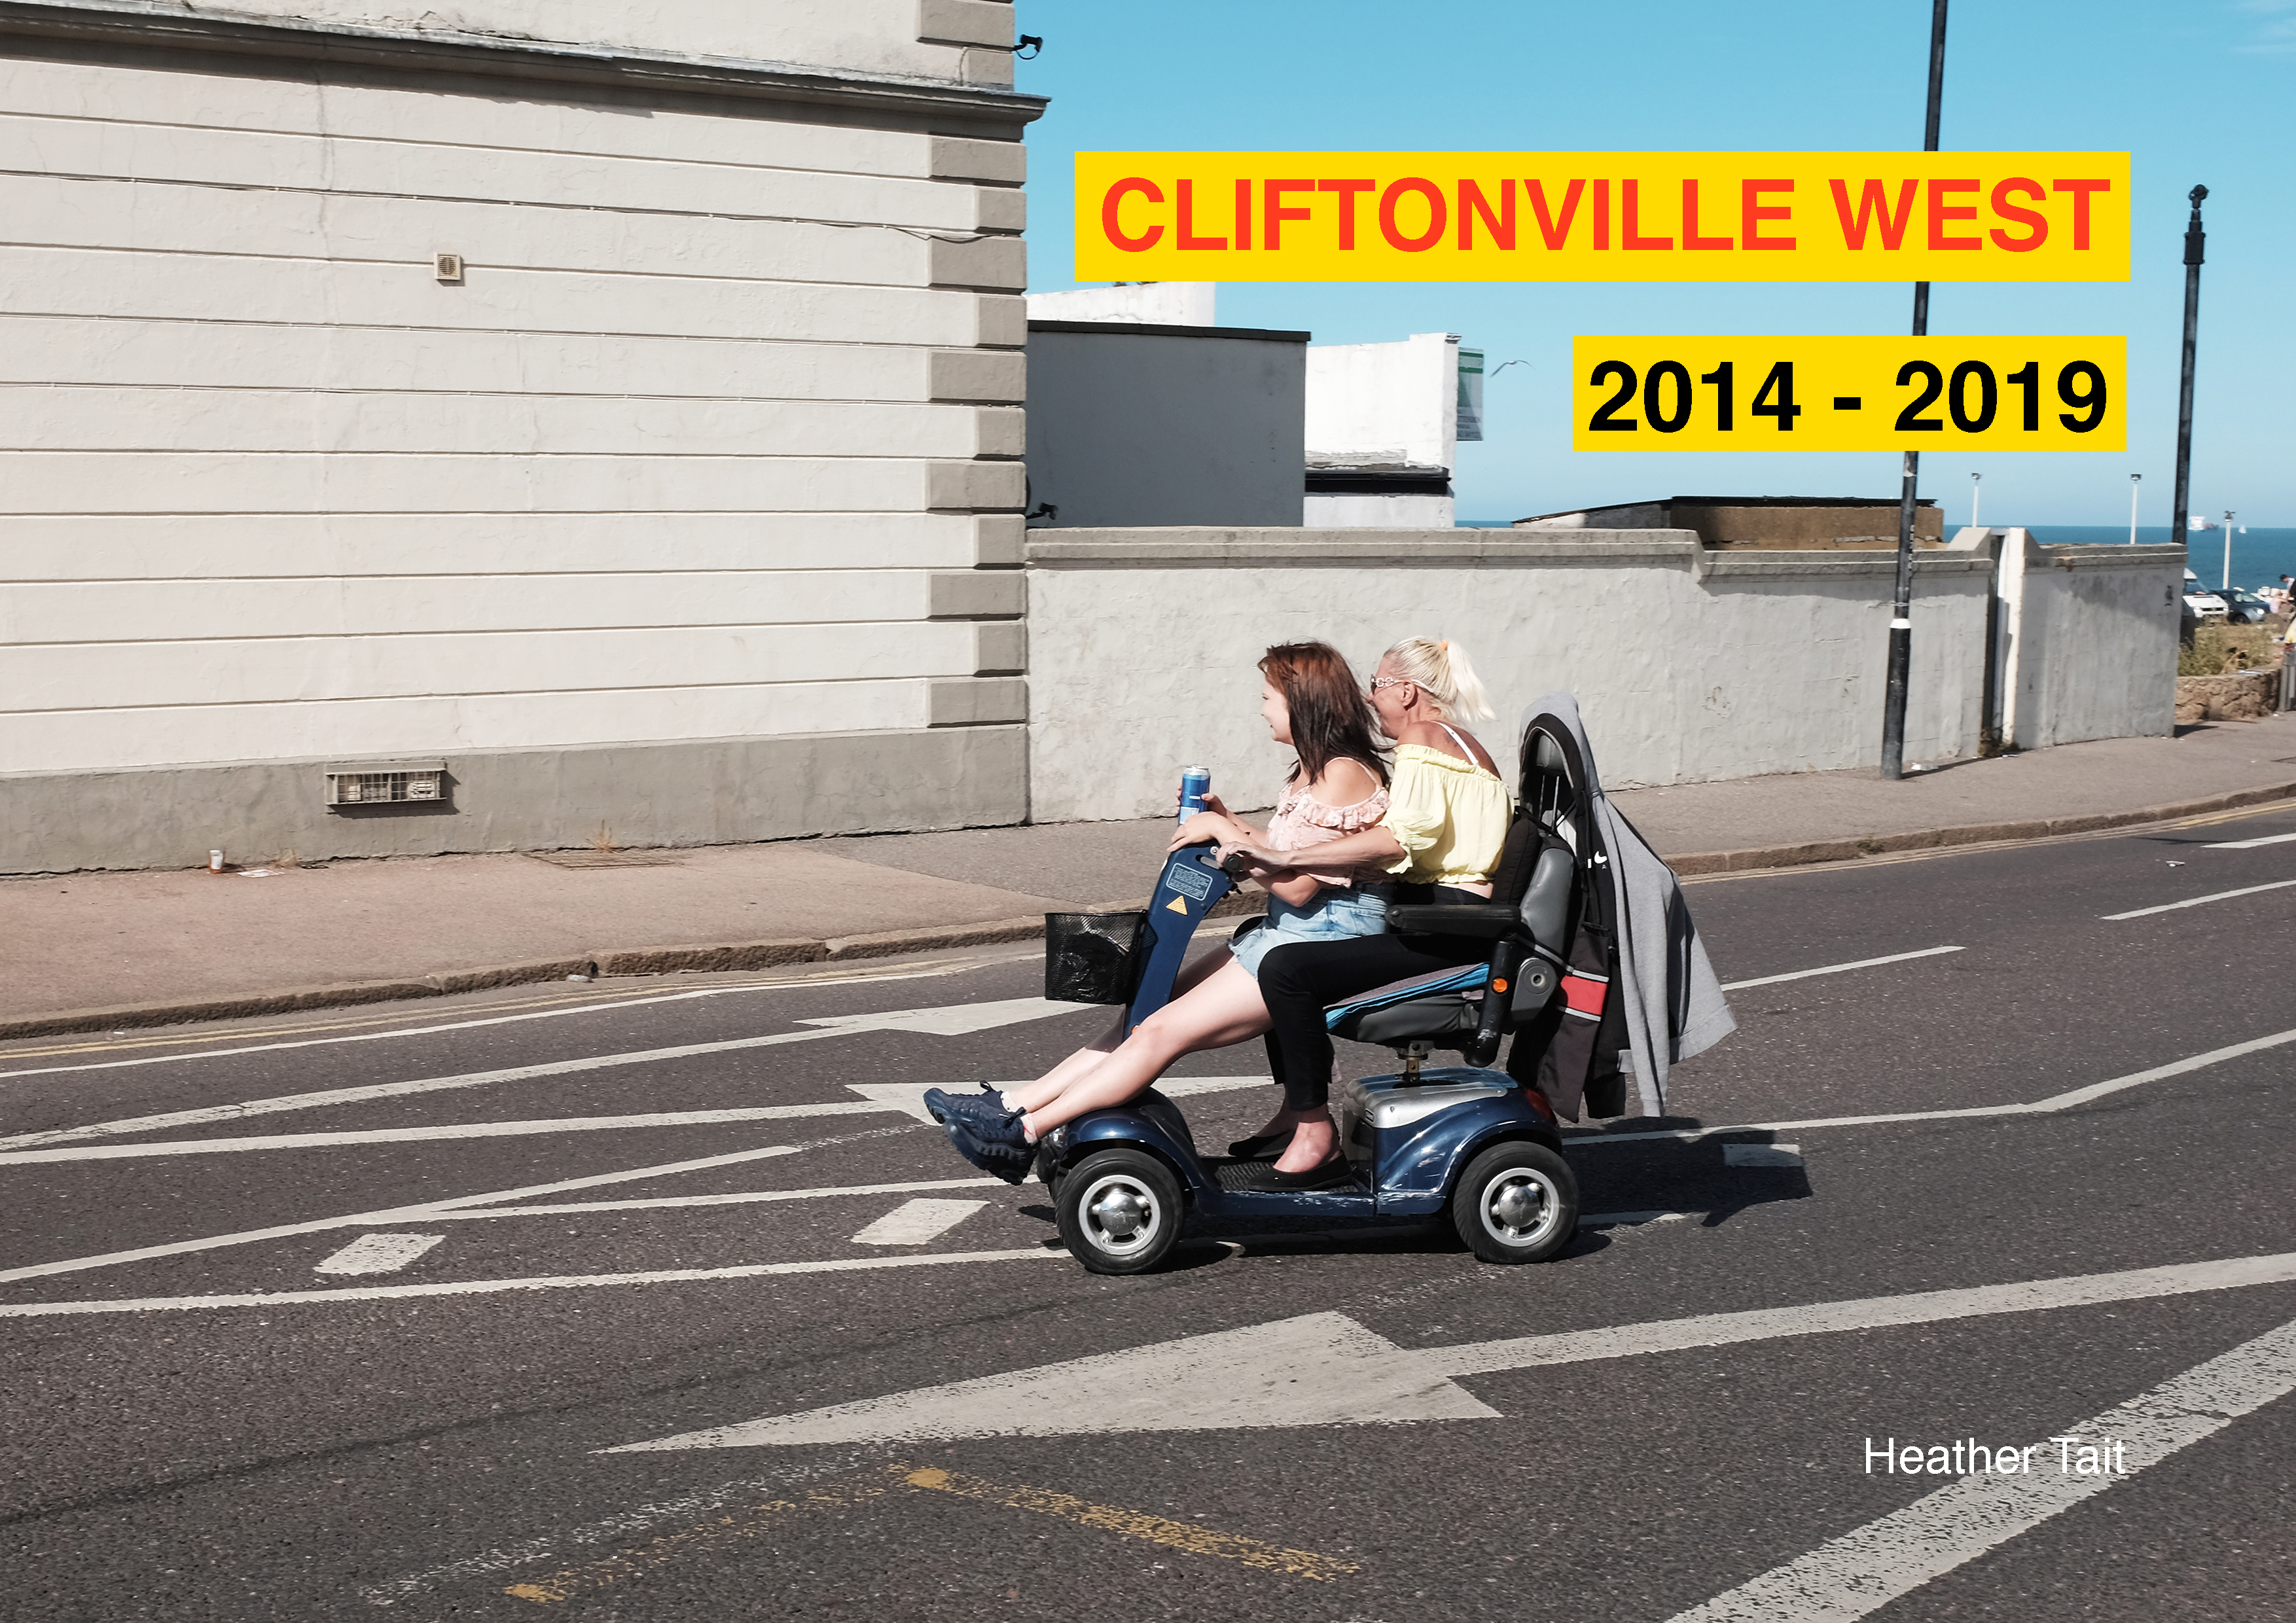 Cliftonville West 2014 - 2019_Heather Tait_margate now festival 2019